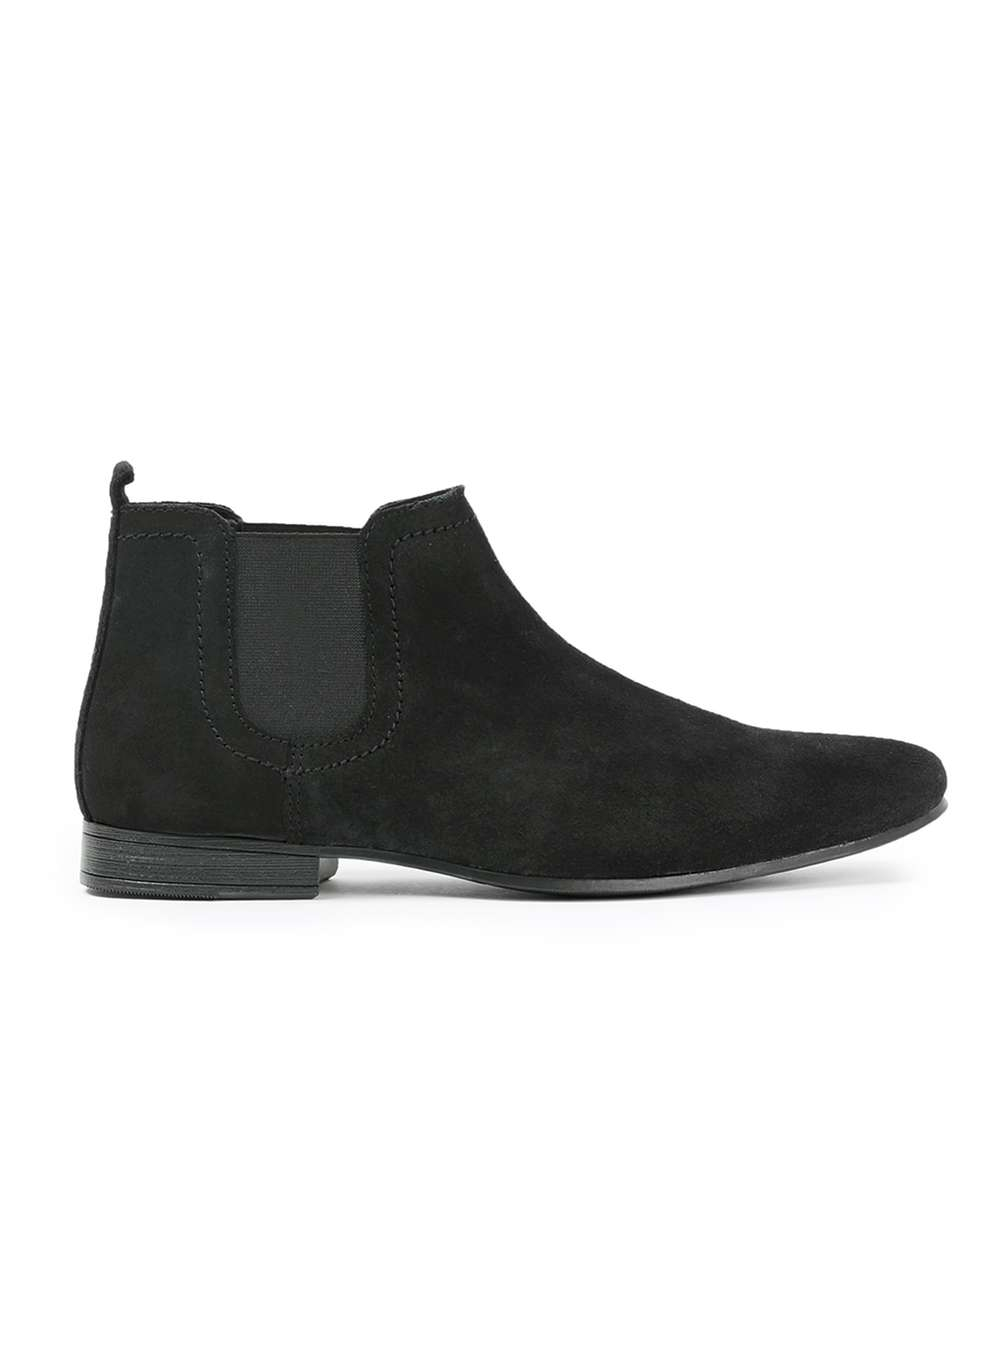 topman black waxy suede chelsea boots in black for lyst